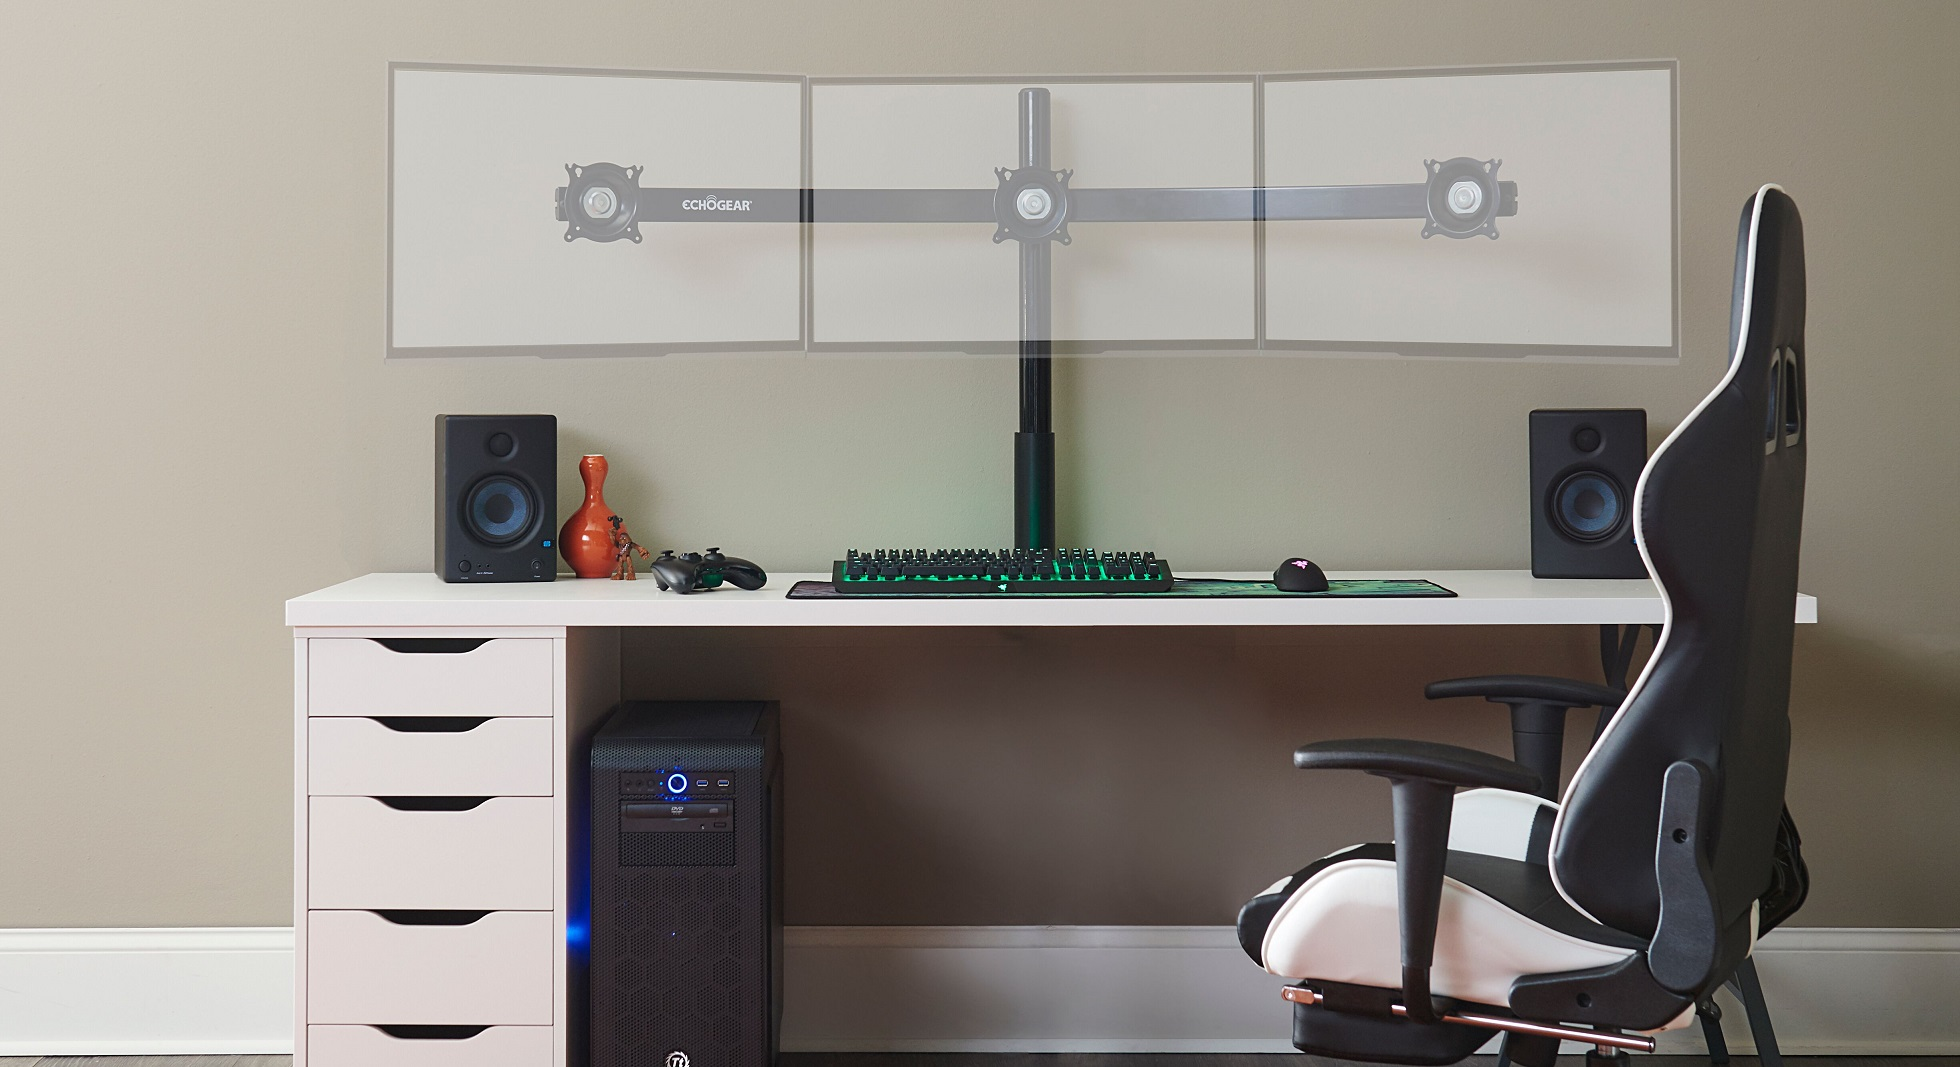 Contest: Win one of three Echogear monitor mounts screenshot